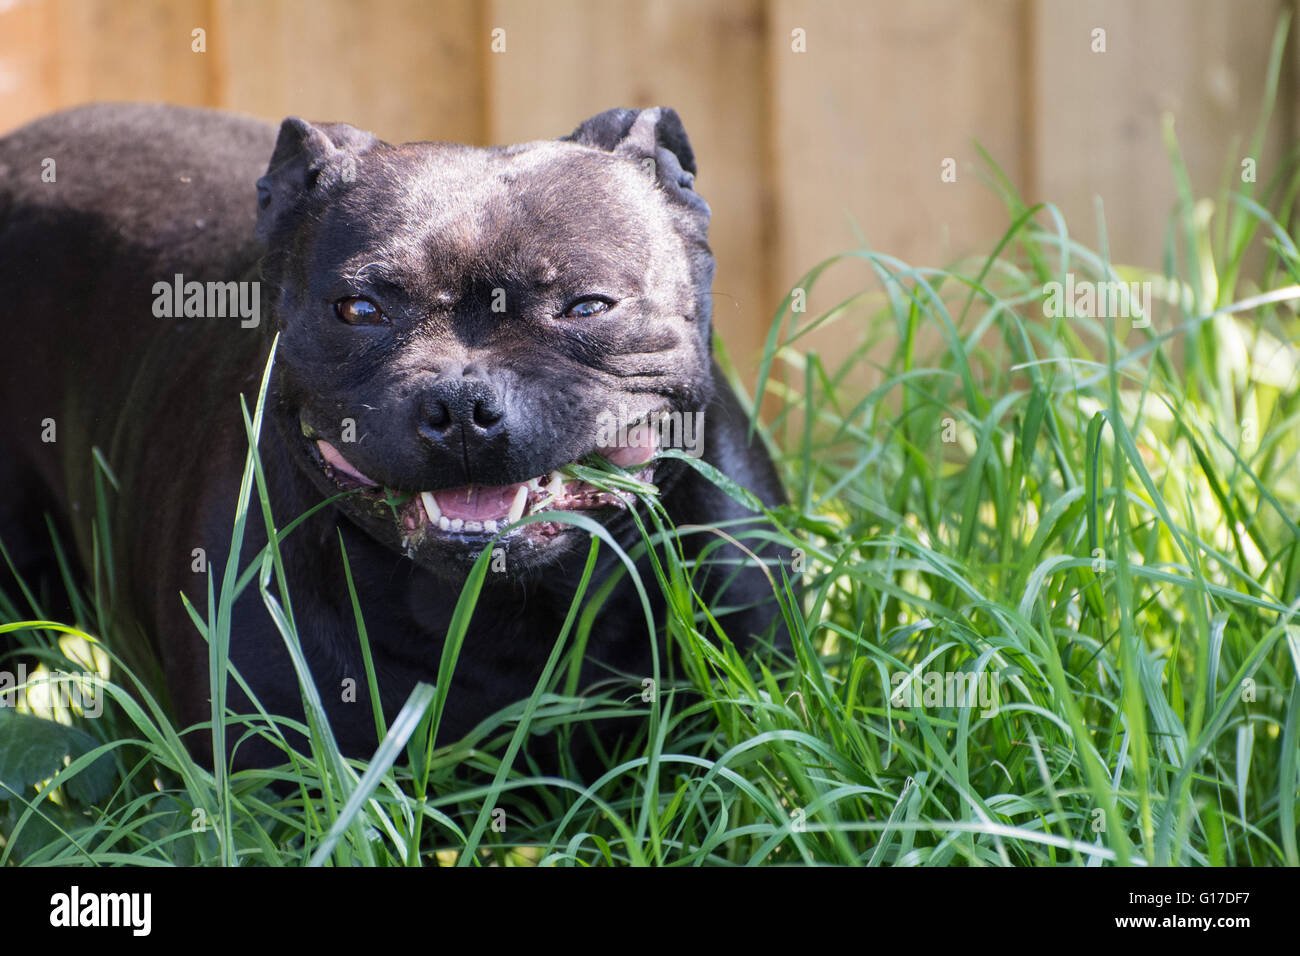 A Staffordshire Bull Terrier eating grass. - Stock Image